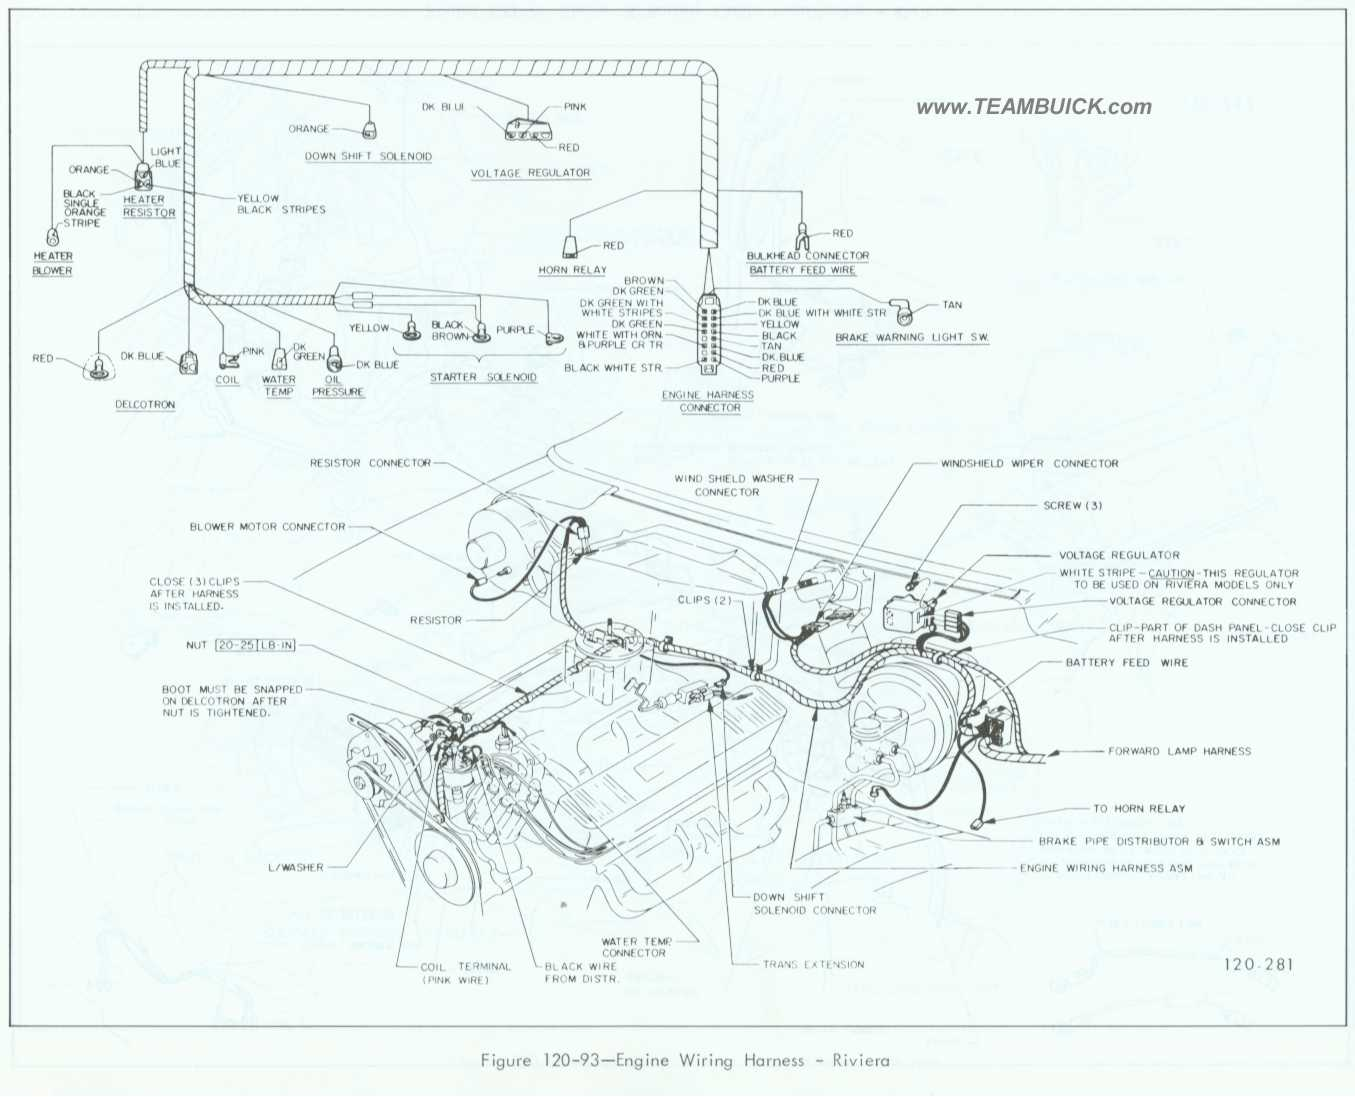 1967 Engine Wiring Diagram Another Blog About Colt 60 Amp Fuse Box Buick Riviera Harness Rh Teambuick Com Vw Beetle Chevelle